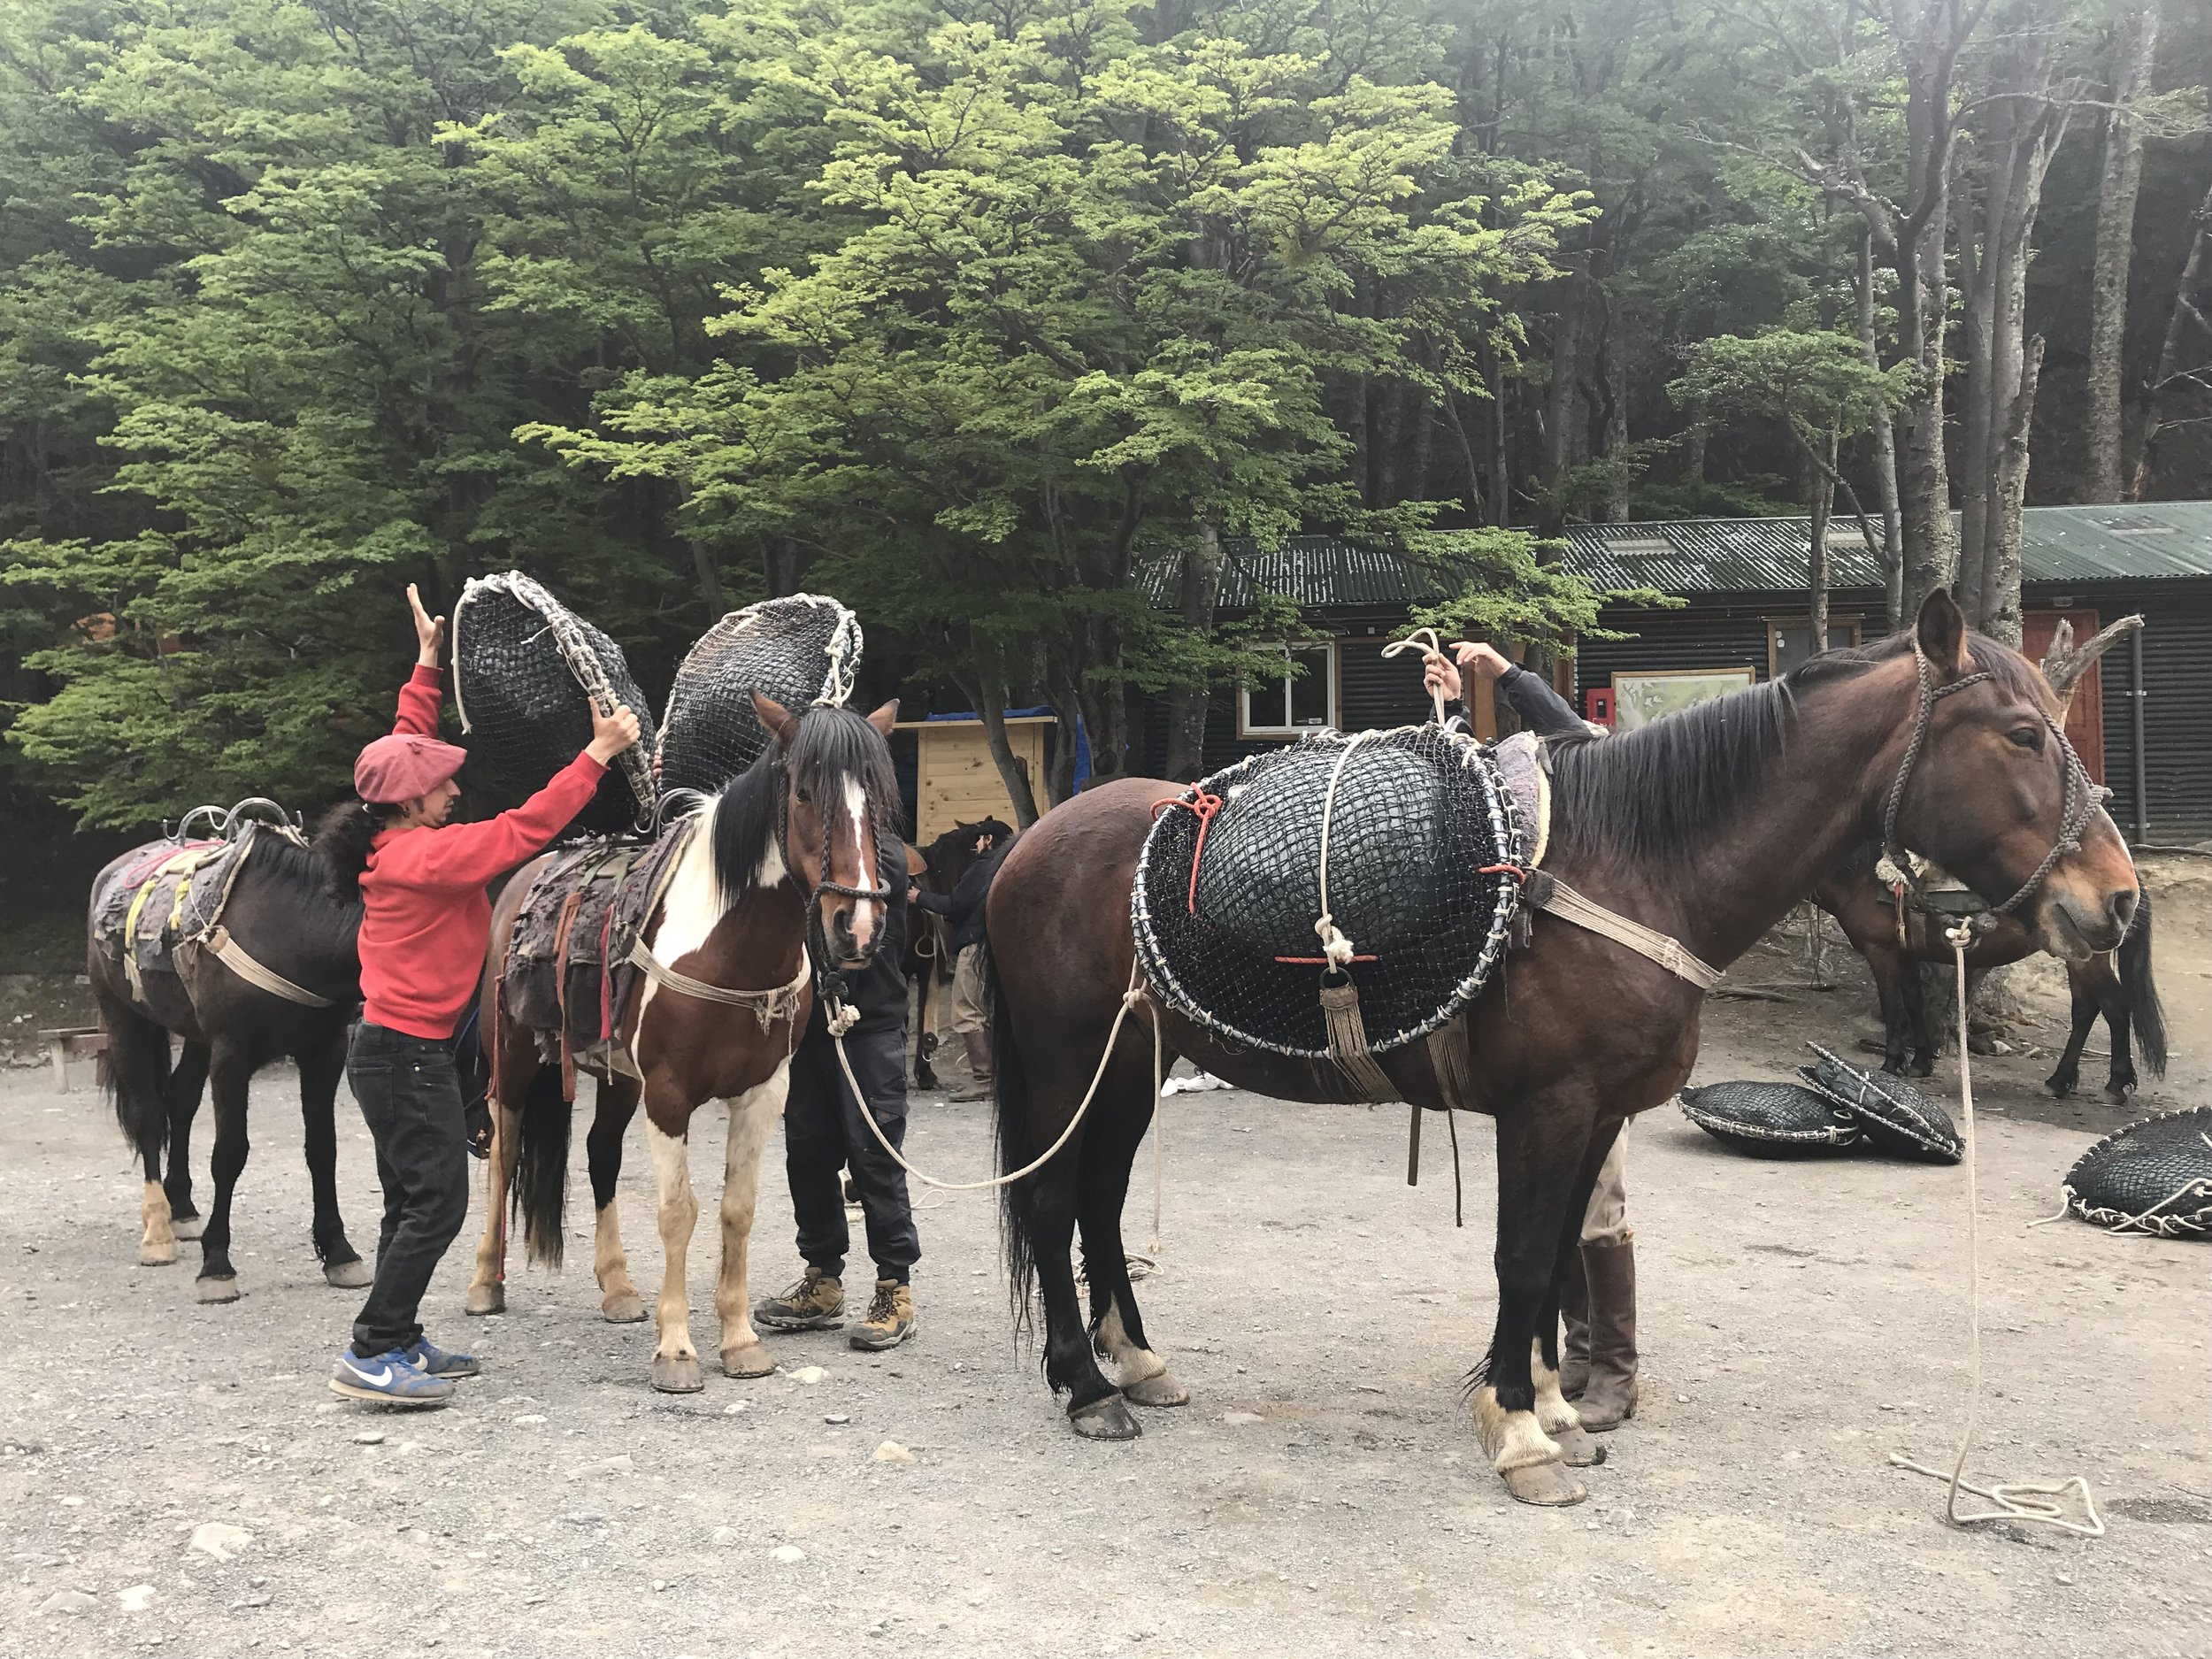 These horses carry the trash back down to civilization